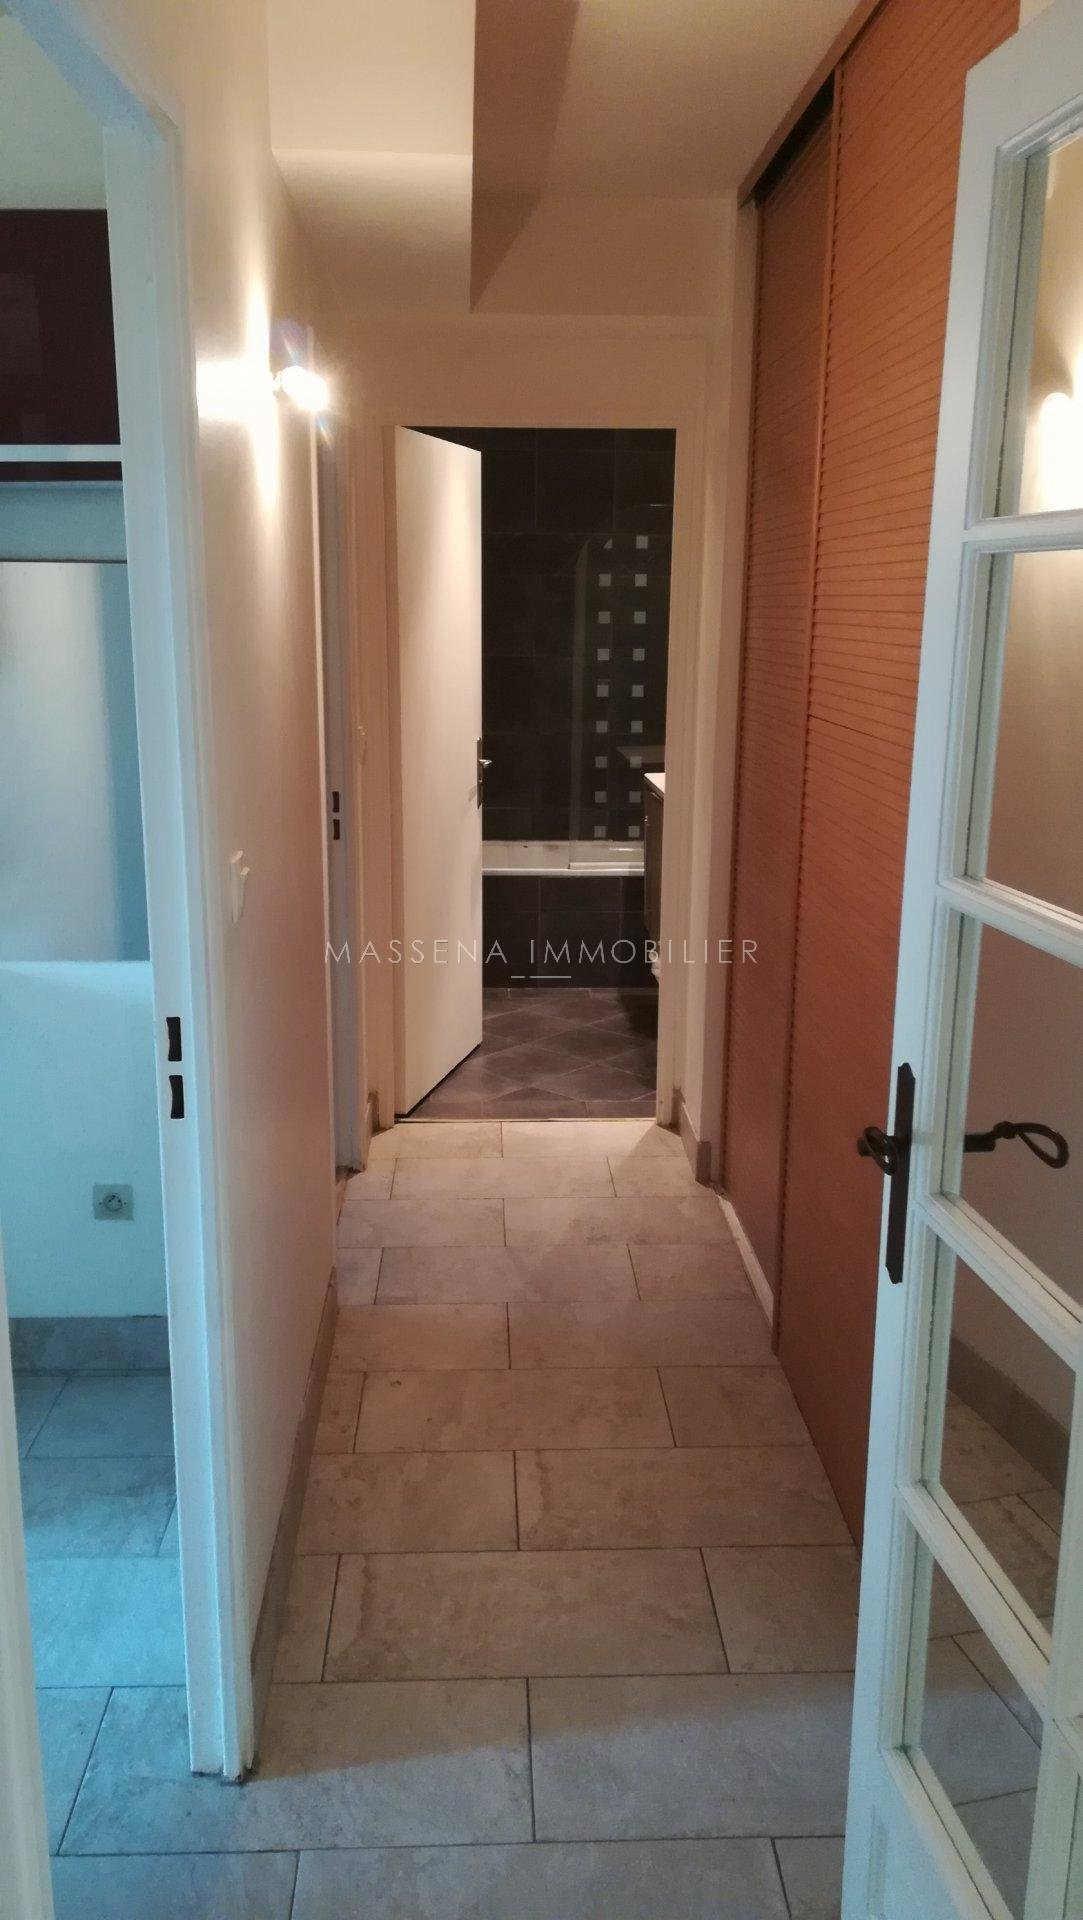 Fabron - Ground floor 1-bed apartment